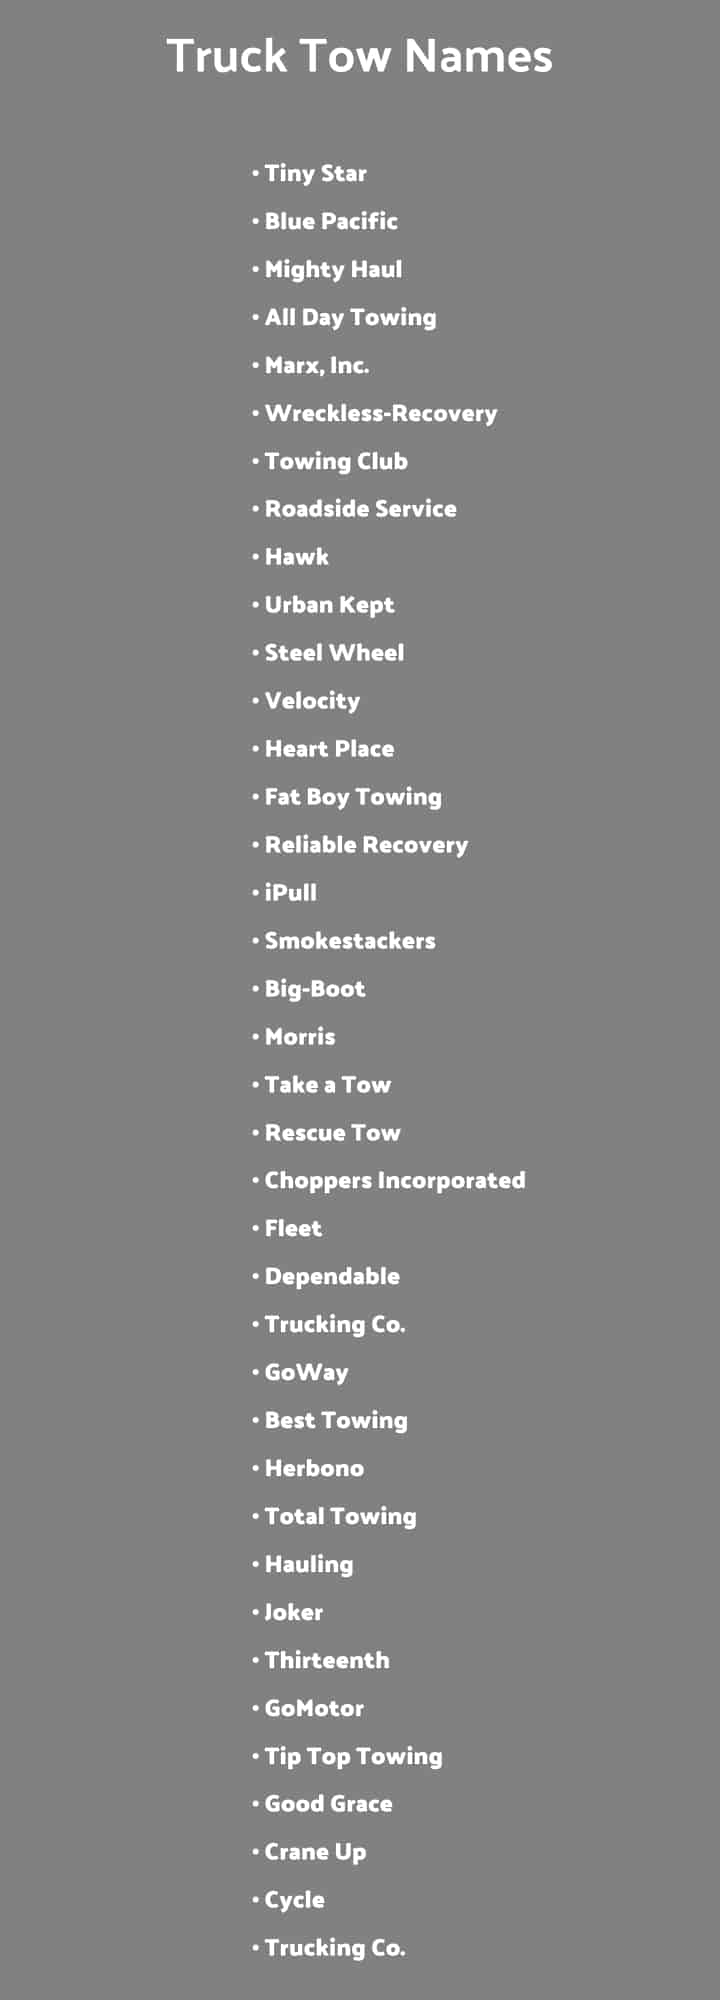 Towing Company Names List